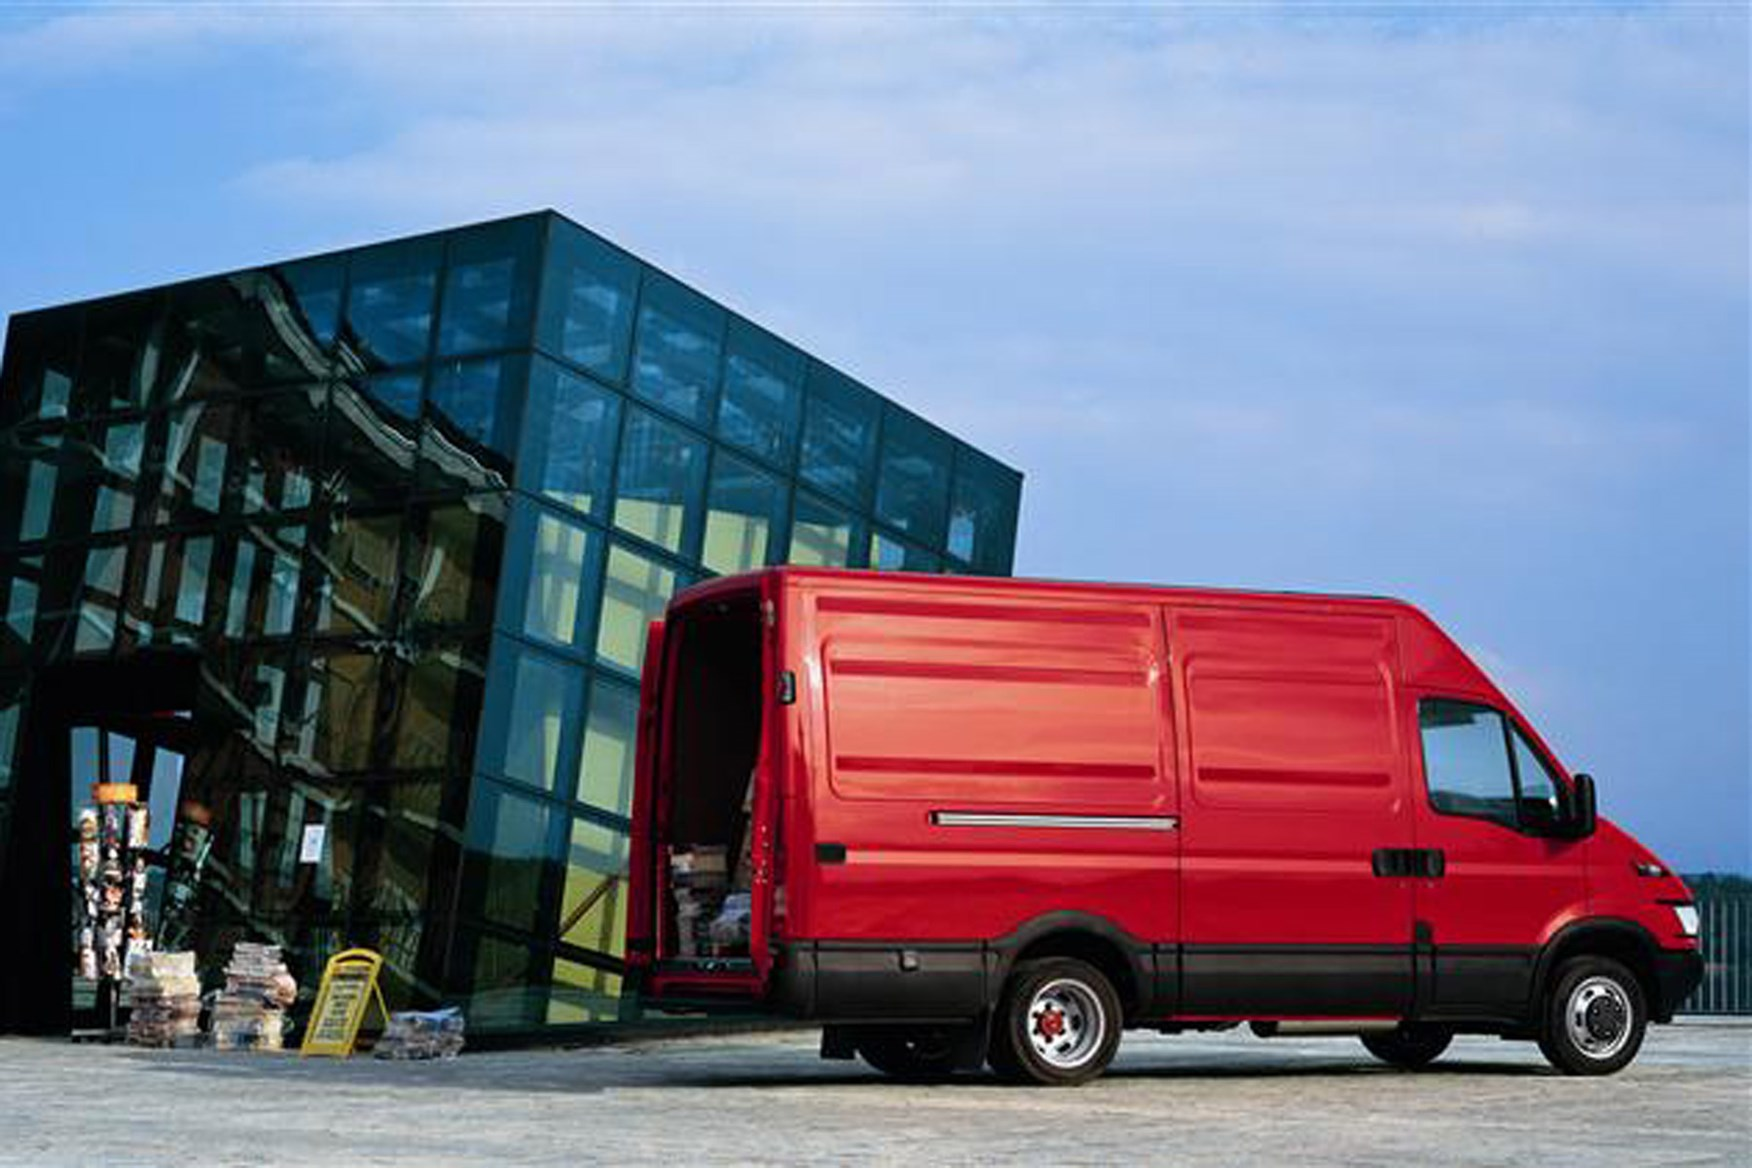 Iveco Daily review on Parkers Vans - side exterior and load access